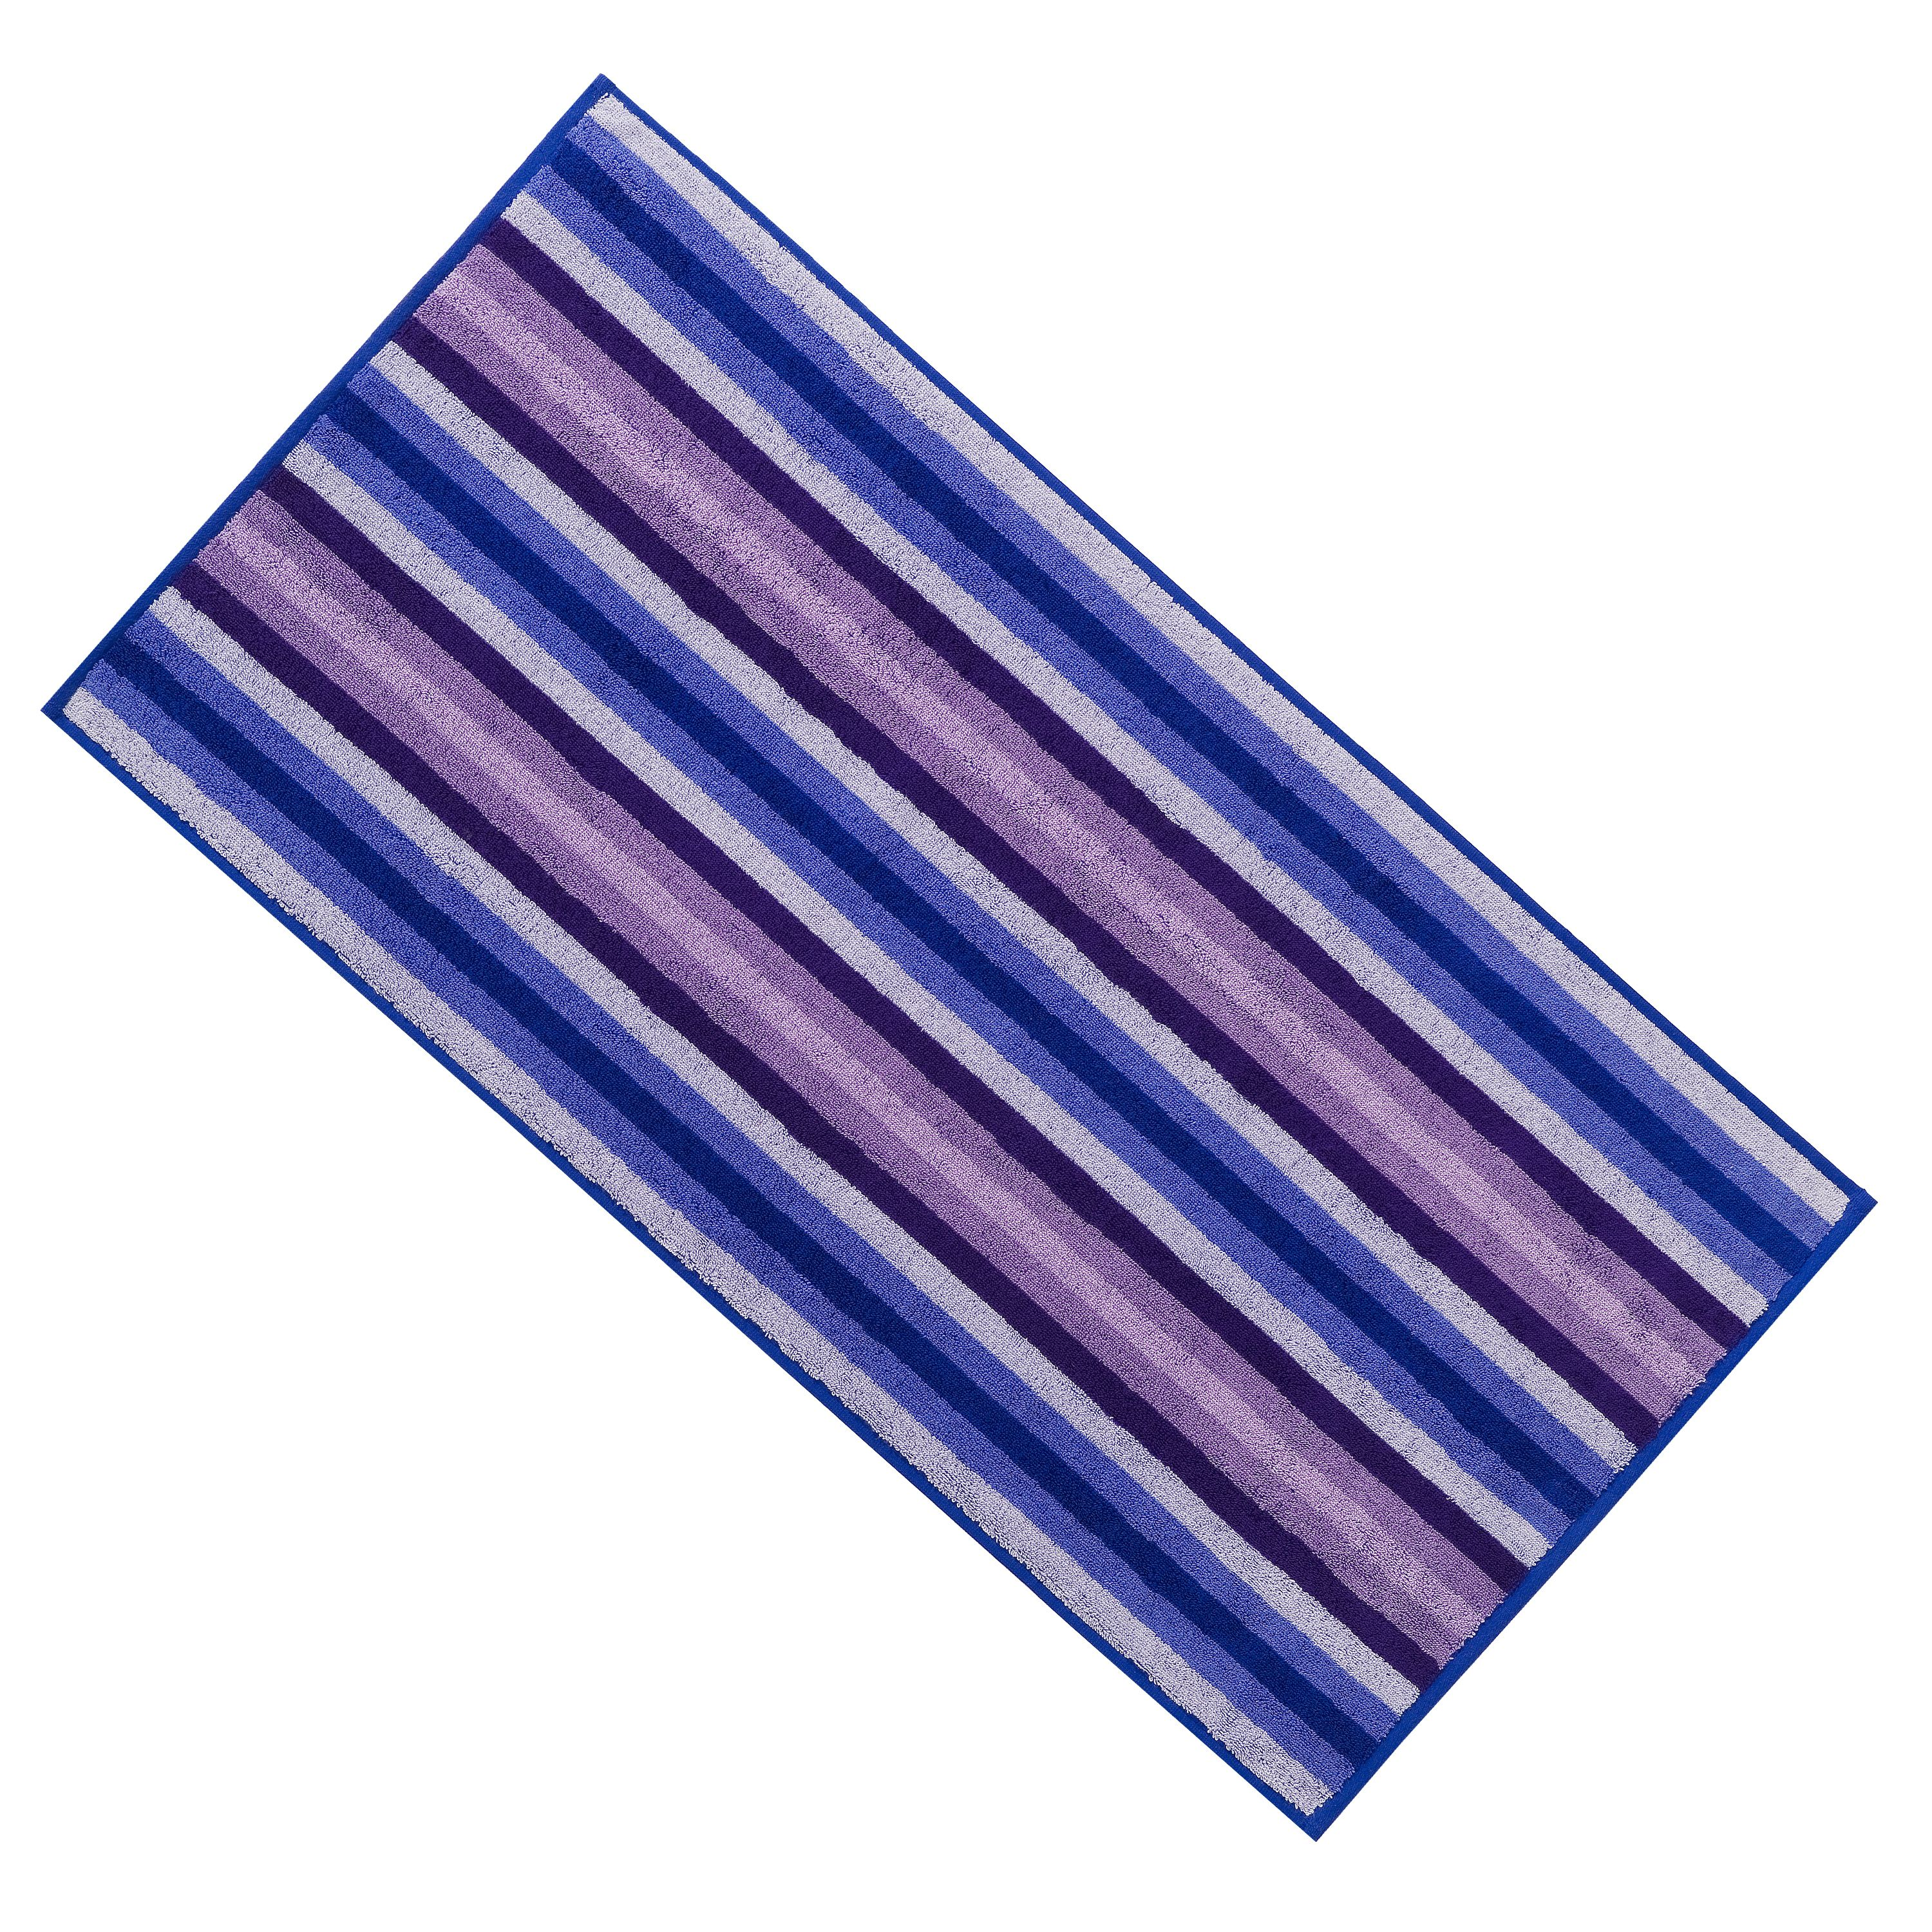 Calypso sunbeam reflex blue towels